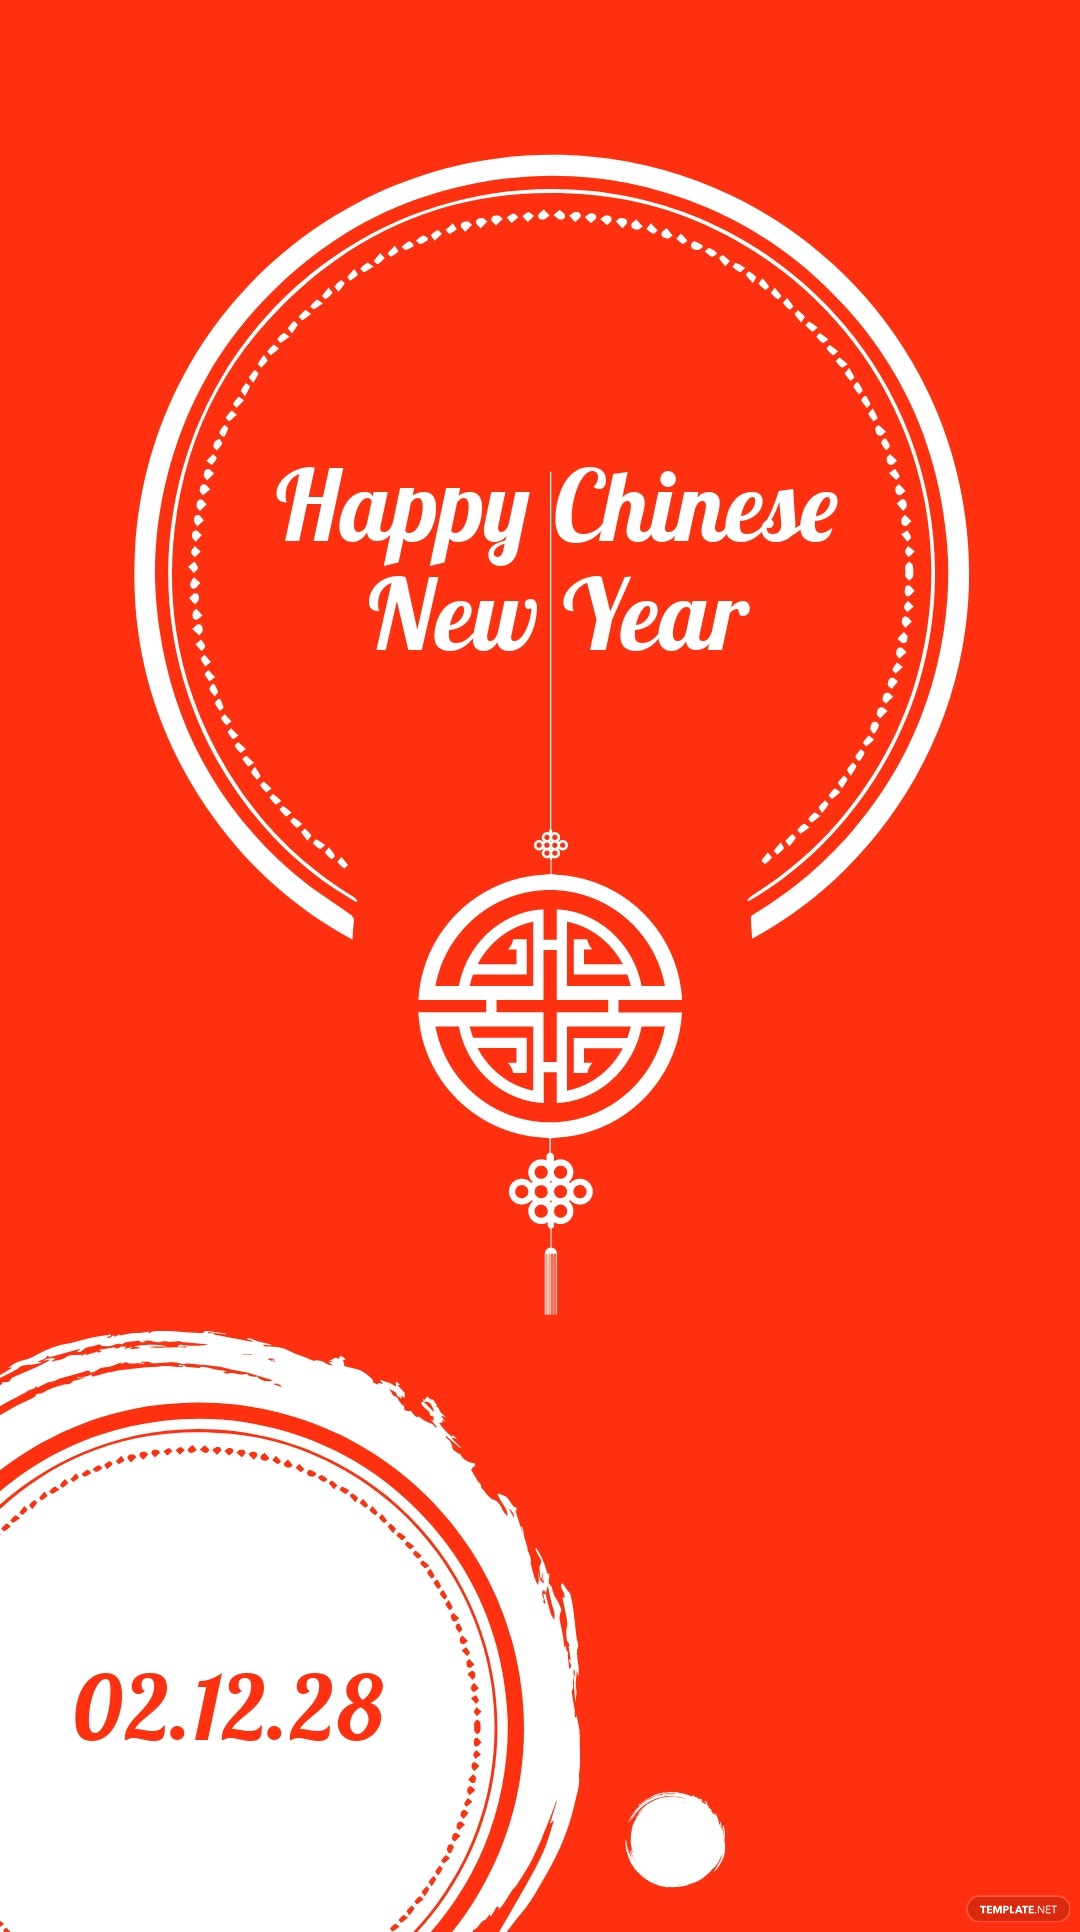 Chinese New Year Quote Instagram Story Template 4.jpe